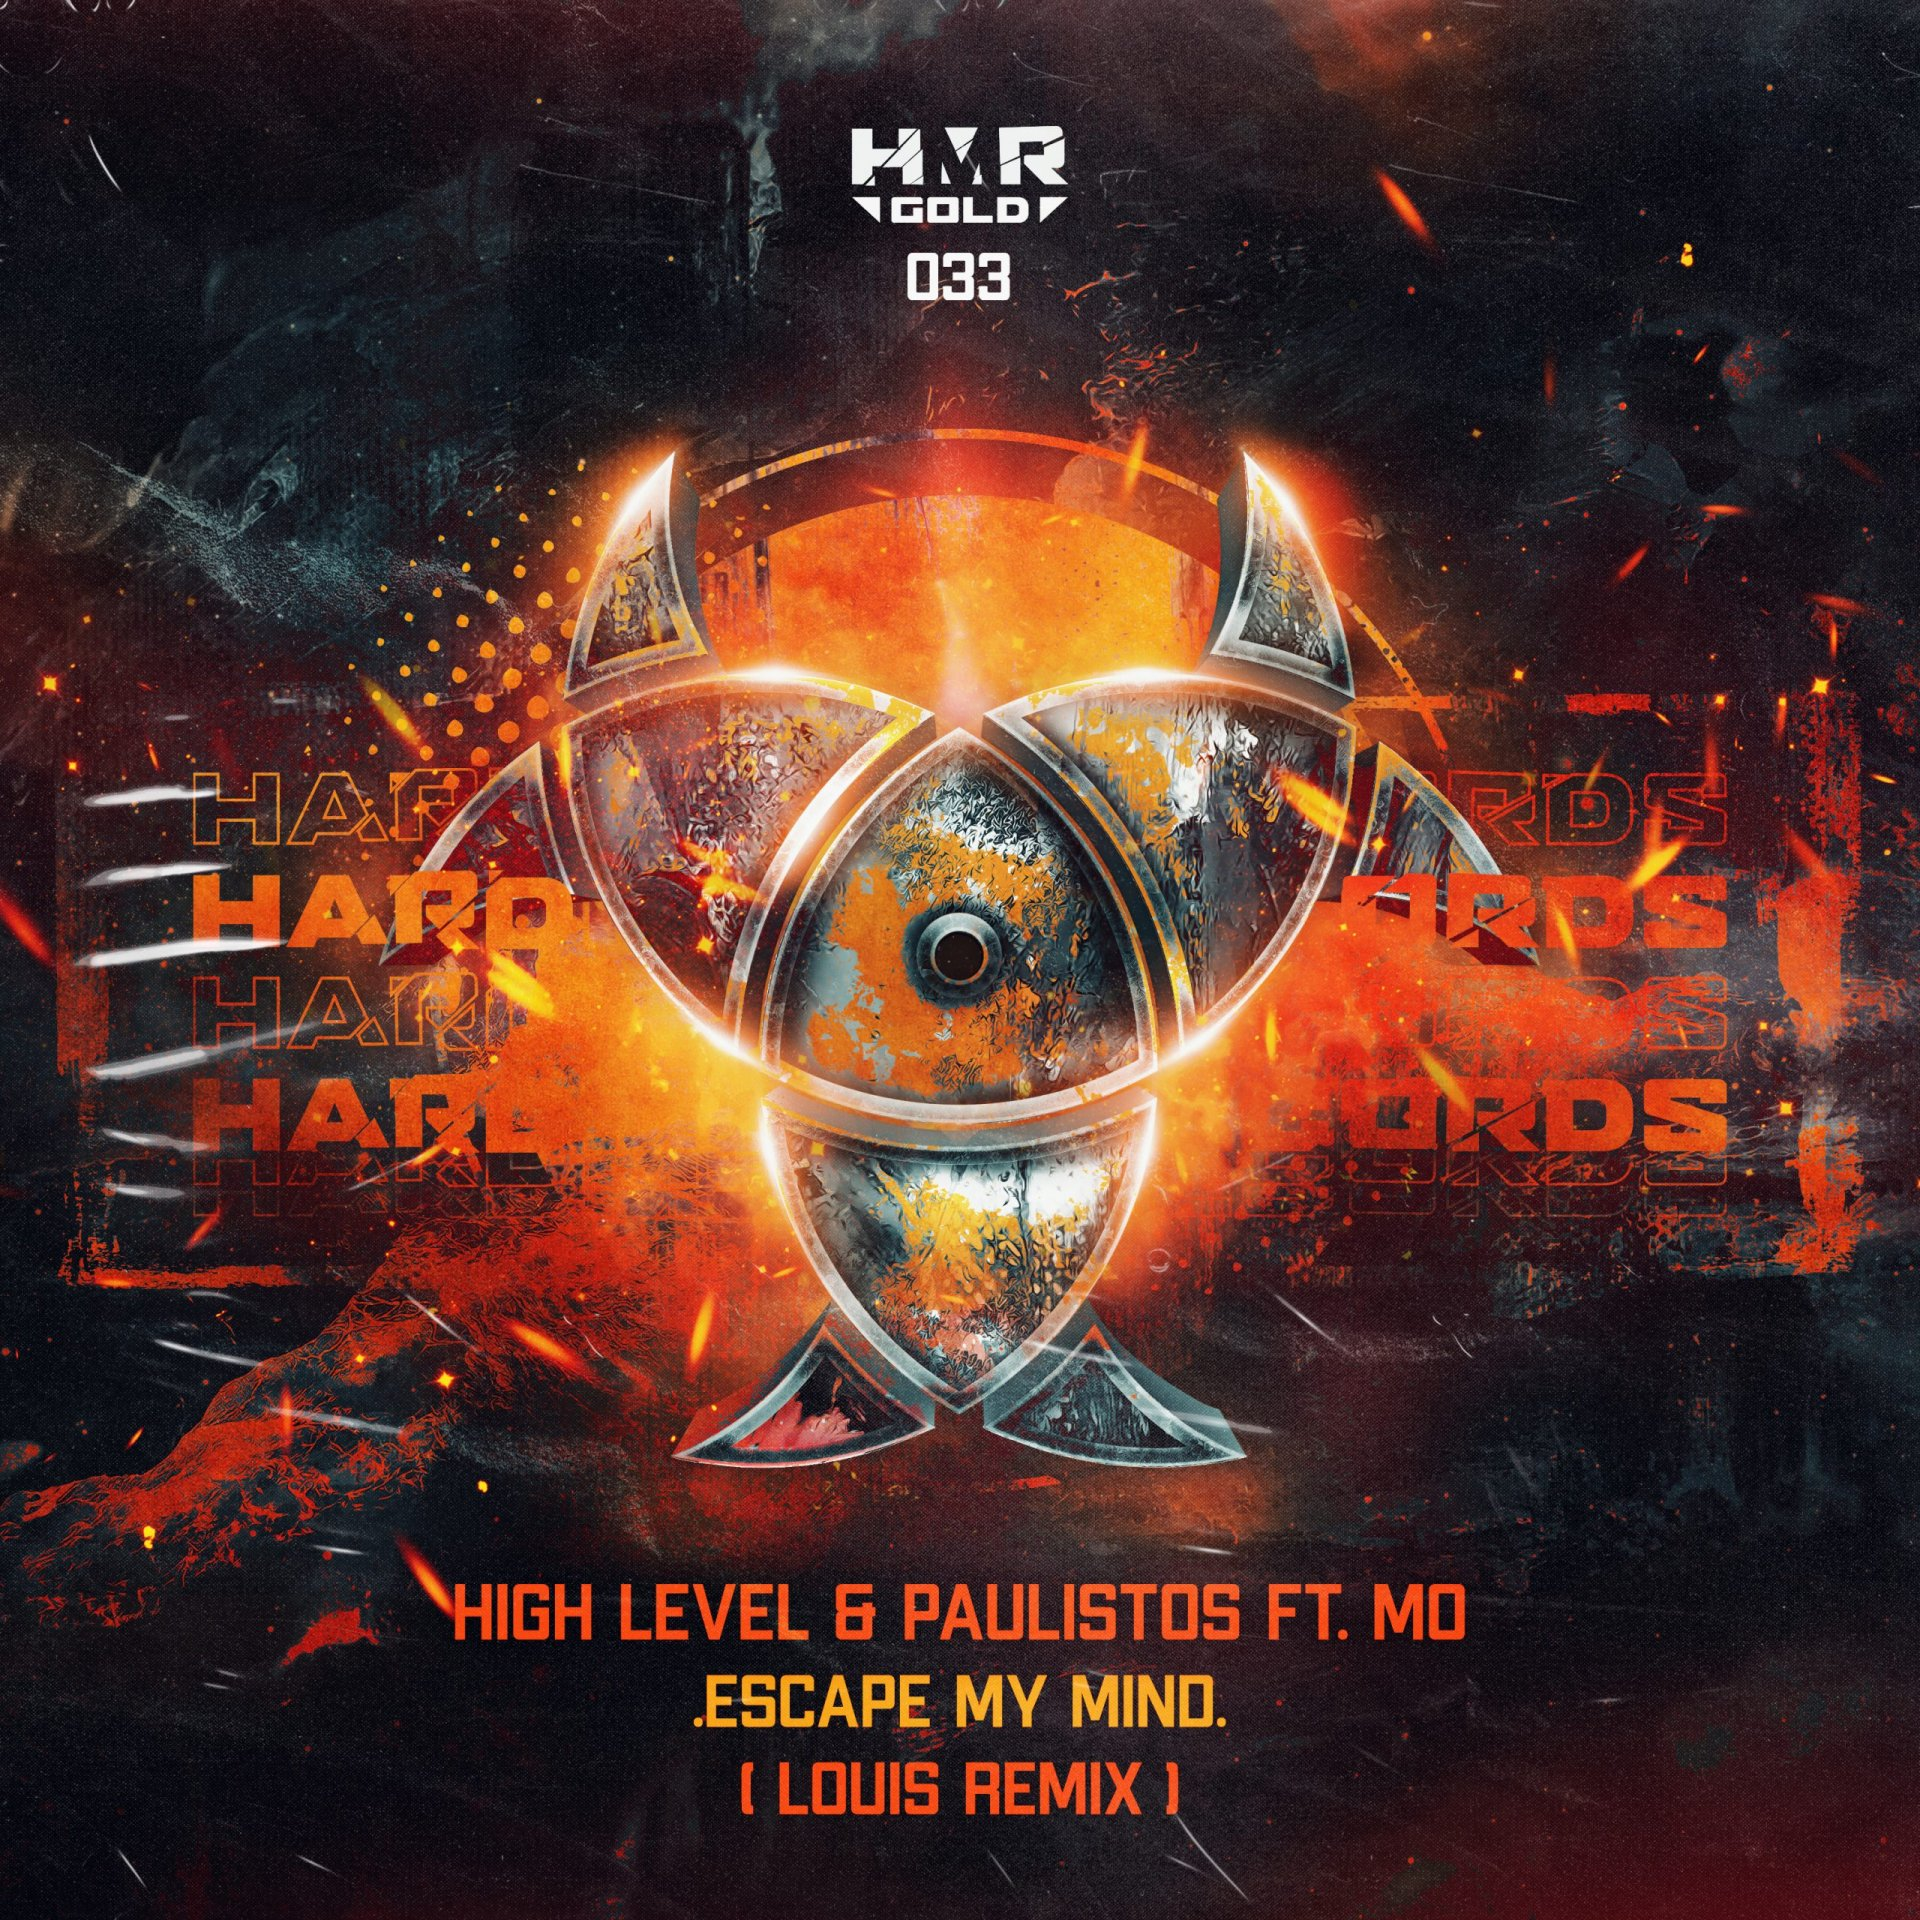 Escape My Mind (Louis Remix) by High Level & Paulistos ft. Mo